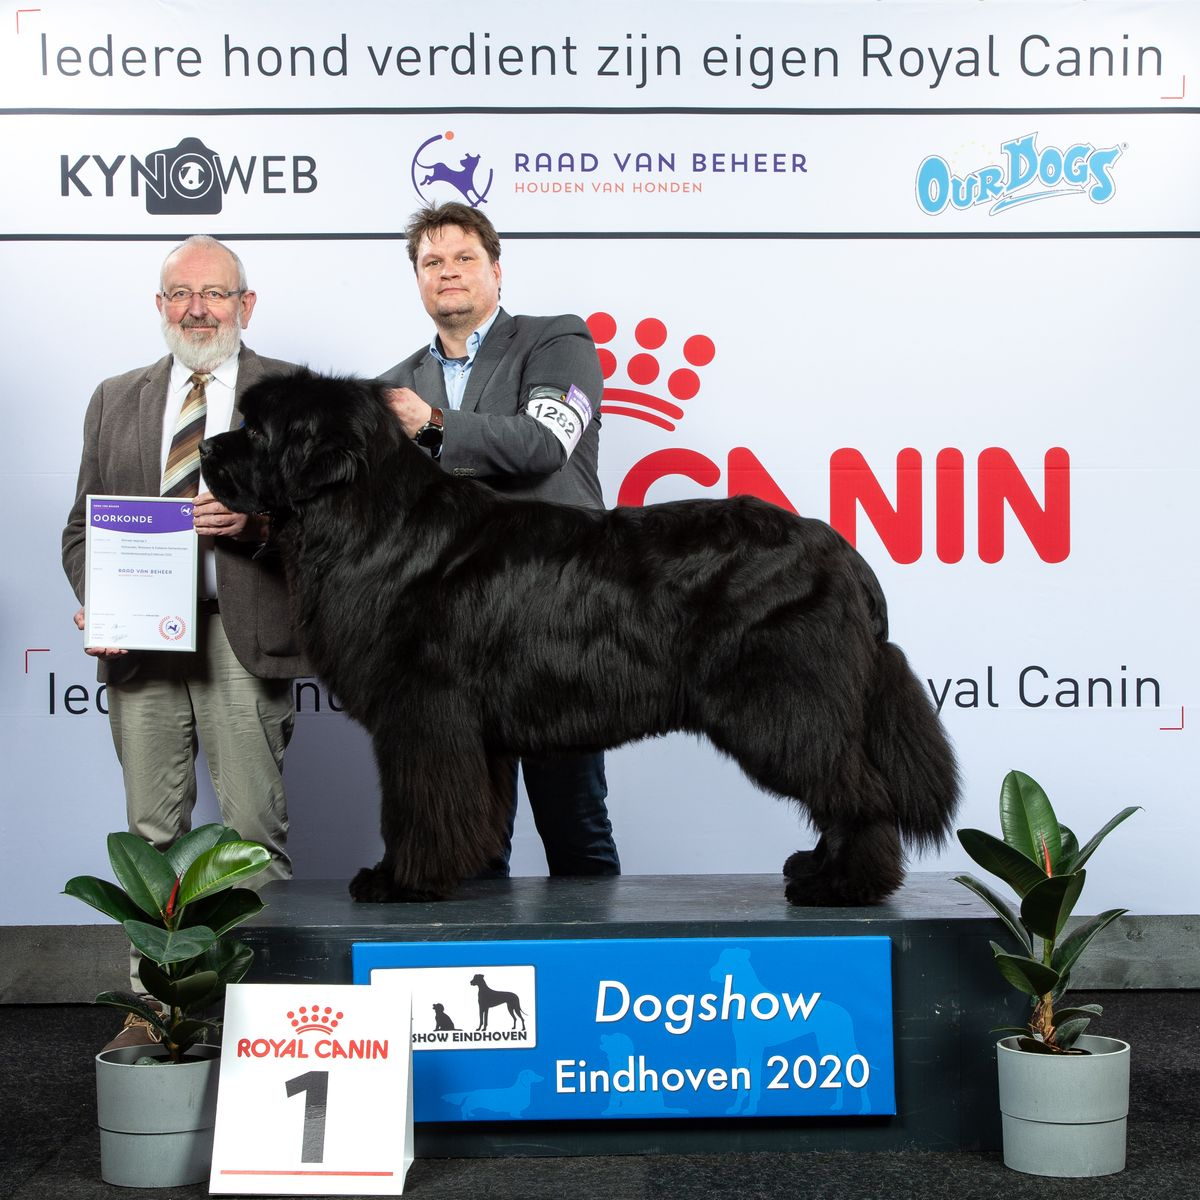 GROUP_2_1_COPYRIGHTFREE_DOGSHOW_EINDHOVEN_2020_KYNOWEB_KY3_2826_20200209_16_37_13